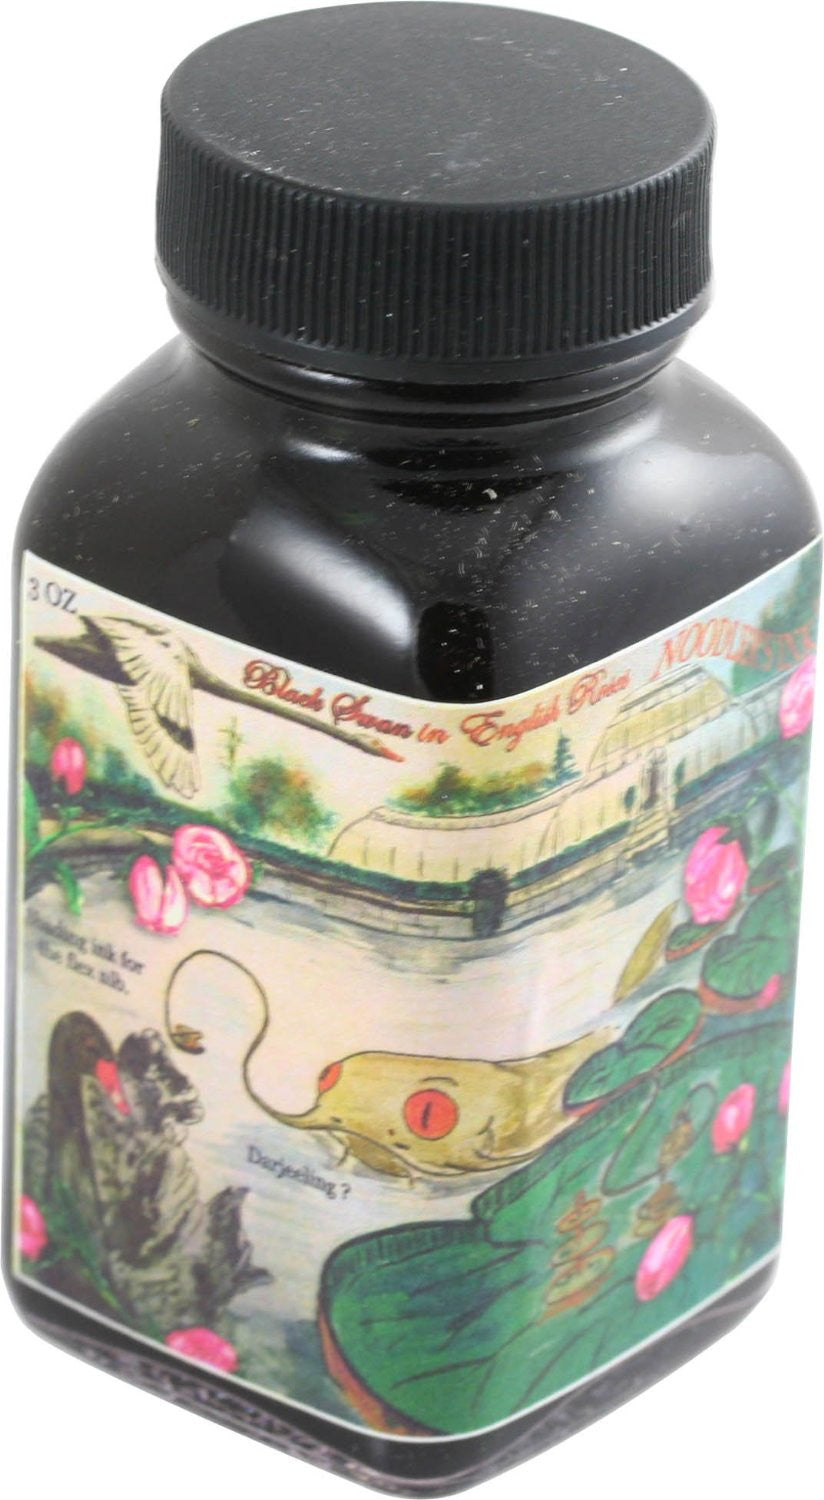 Noodler's Ink Black Swan in English Roses 3 oz